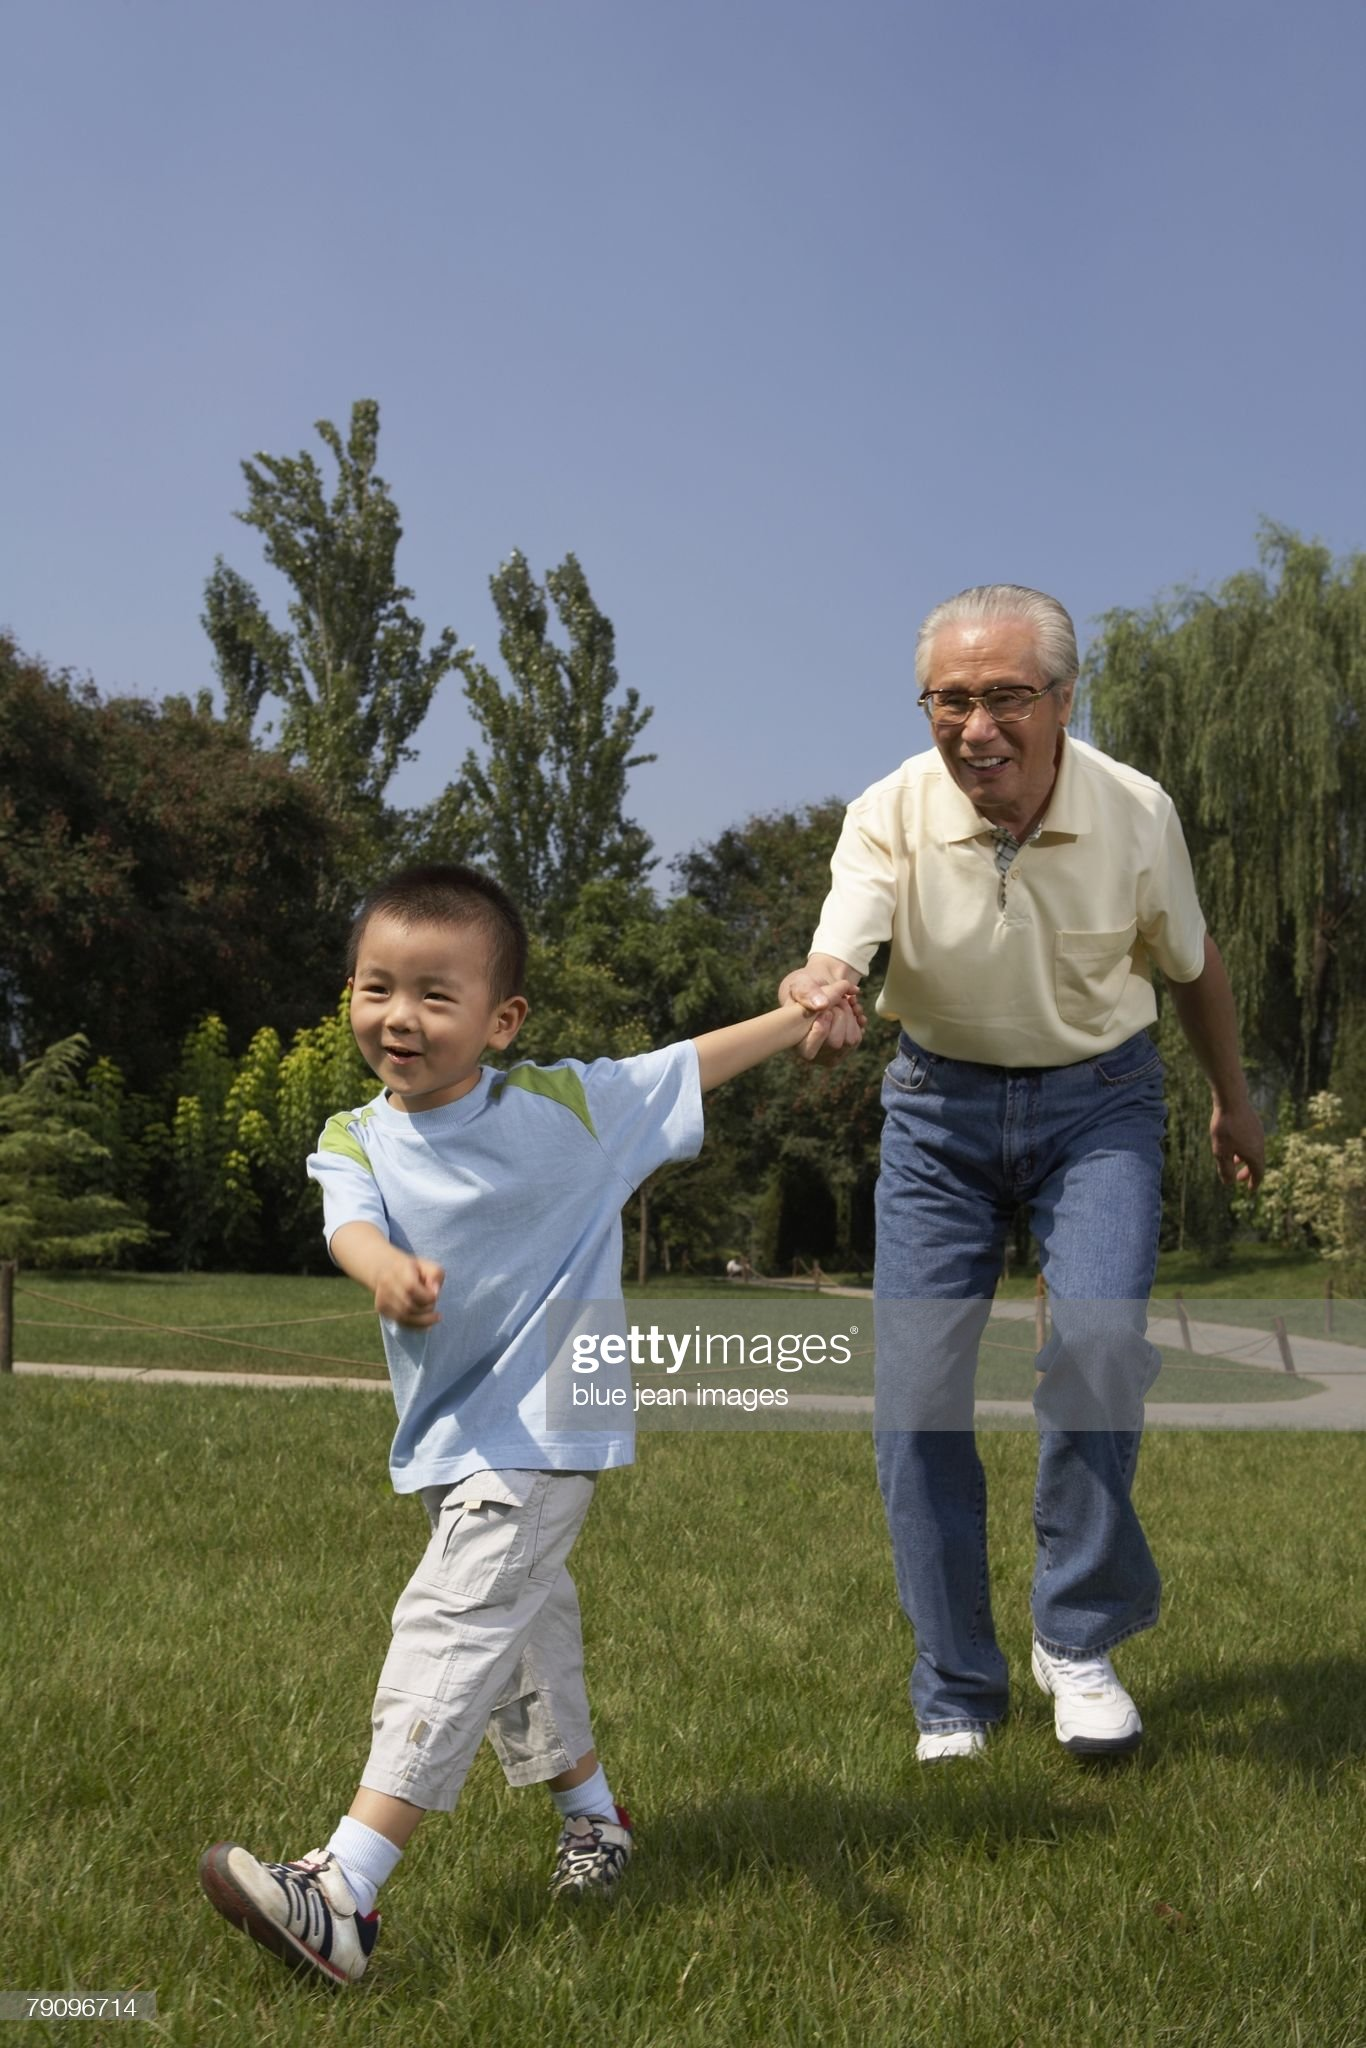 A young boy leads as his grandfather by the hand. : Stock Photo